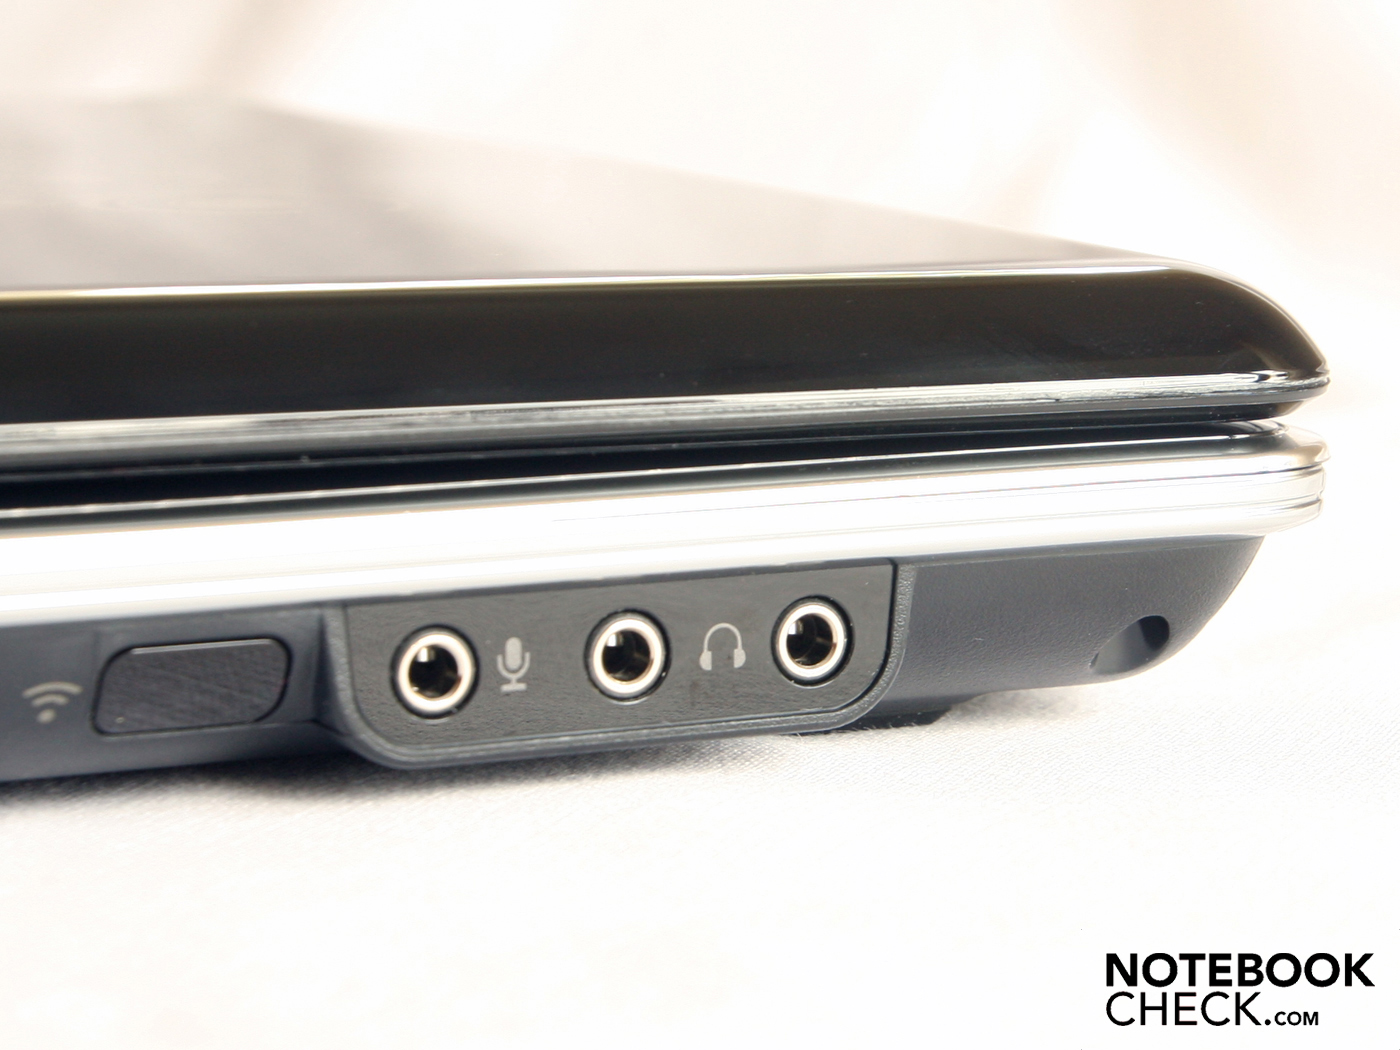 MSI EX625 NOTEBOOK PRO-NETS DIGITAL TV TUNER 64BIT DRIVER DOWNLOAD